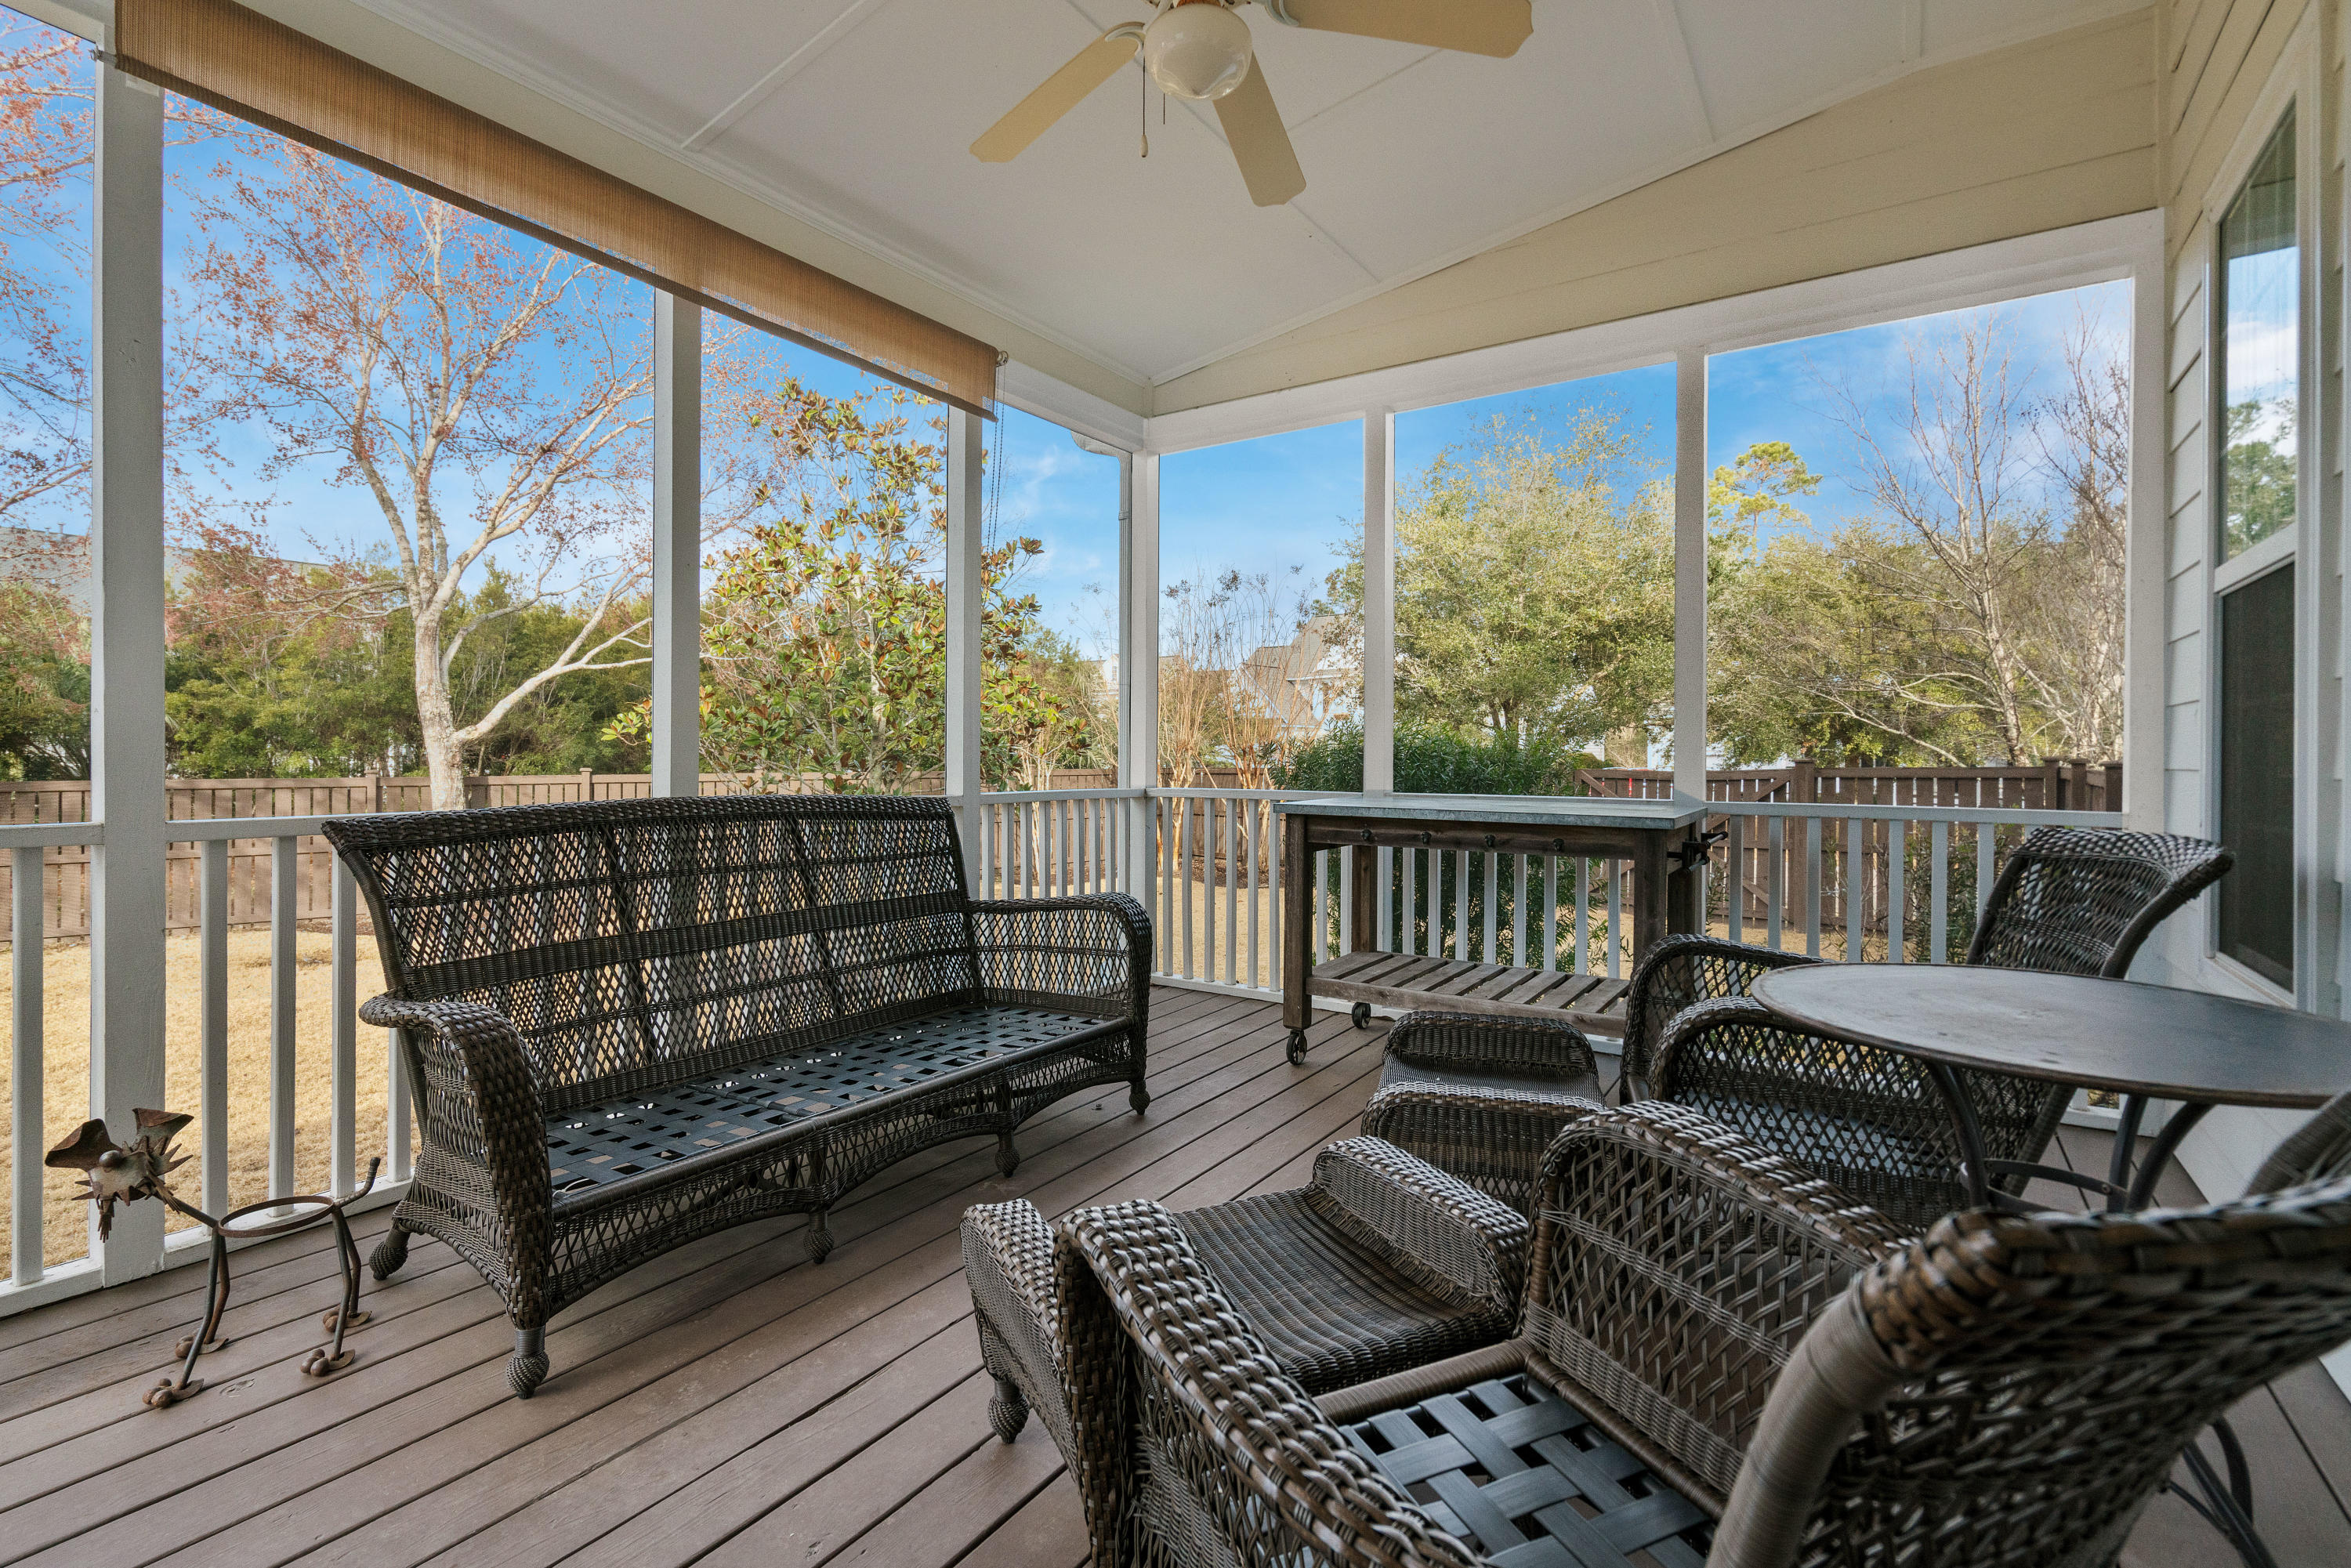 Dunes West Homes For Sale - 1600 Willowick, Mount Pleasant, SC - 6